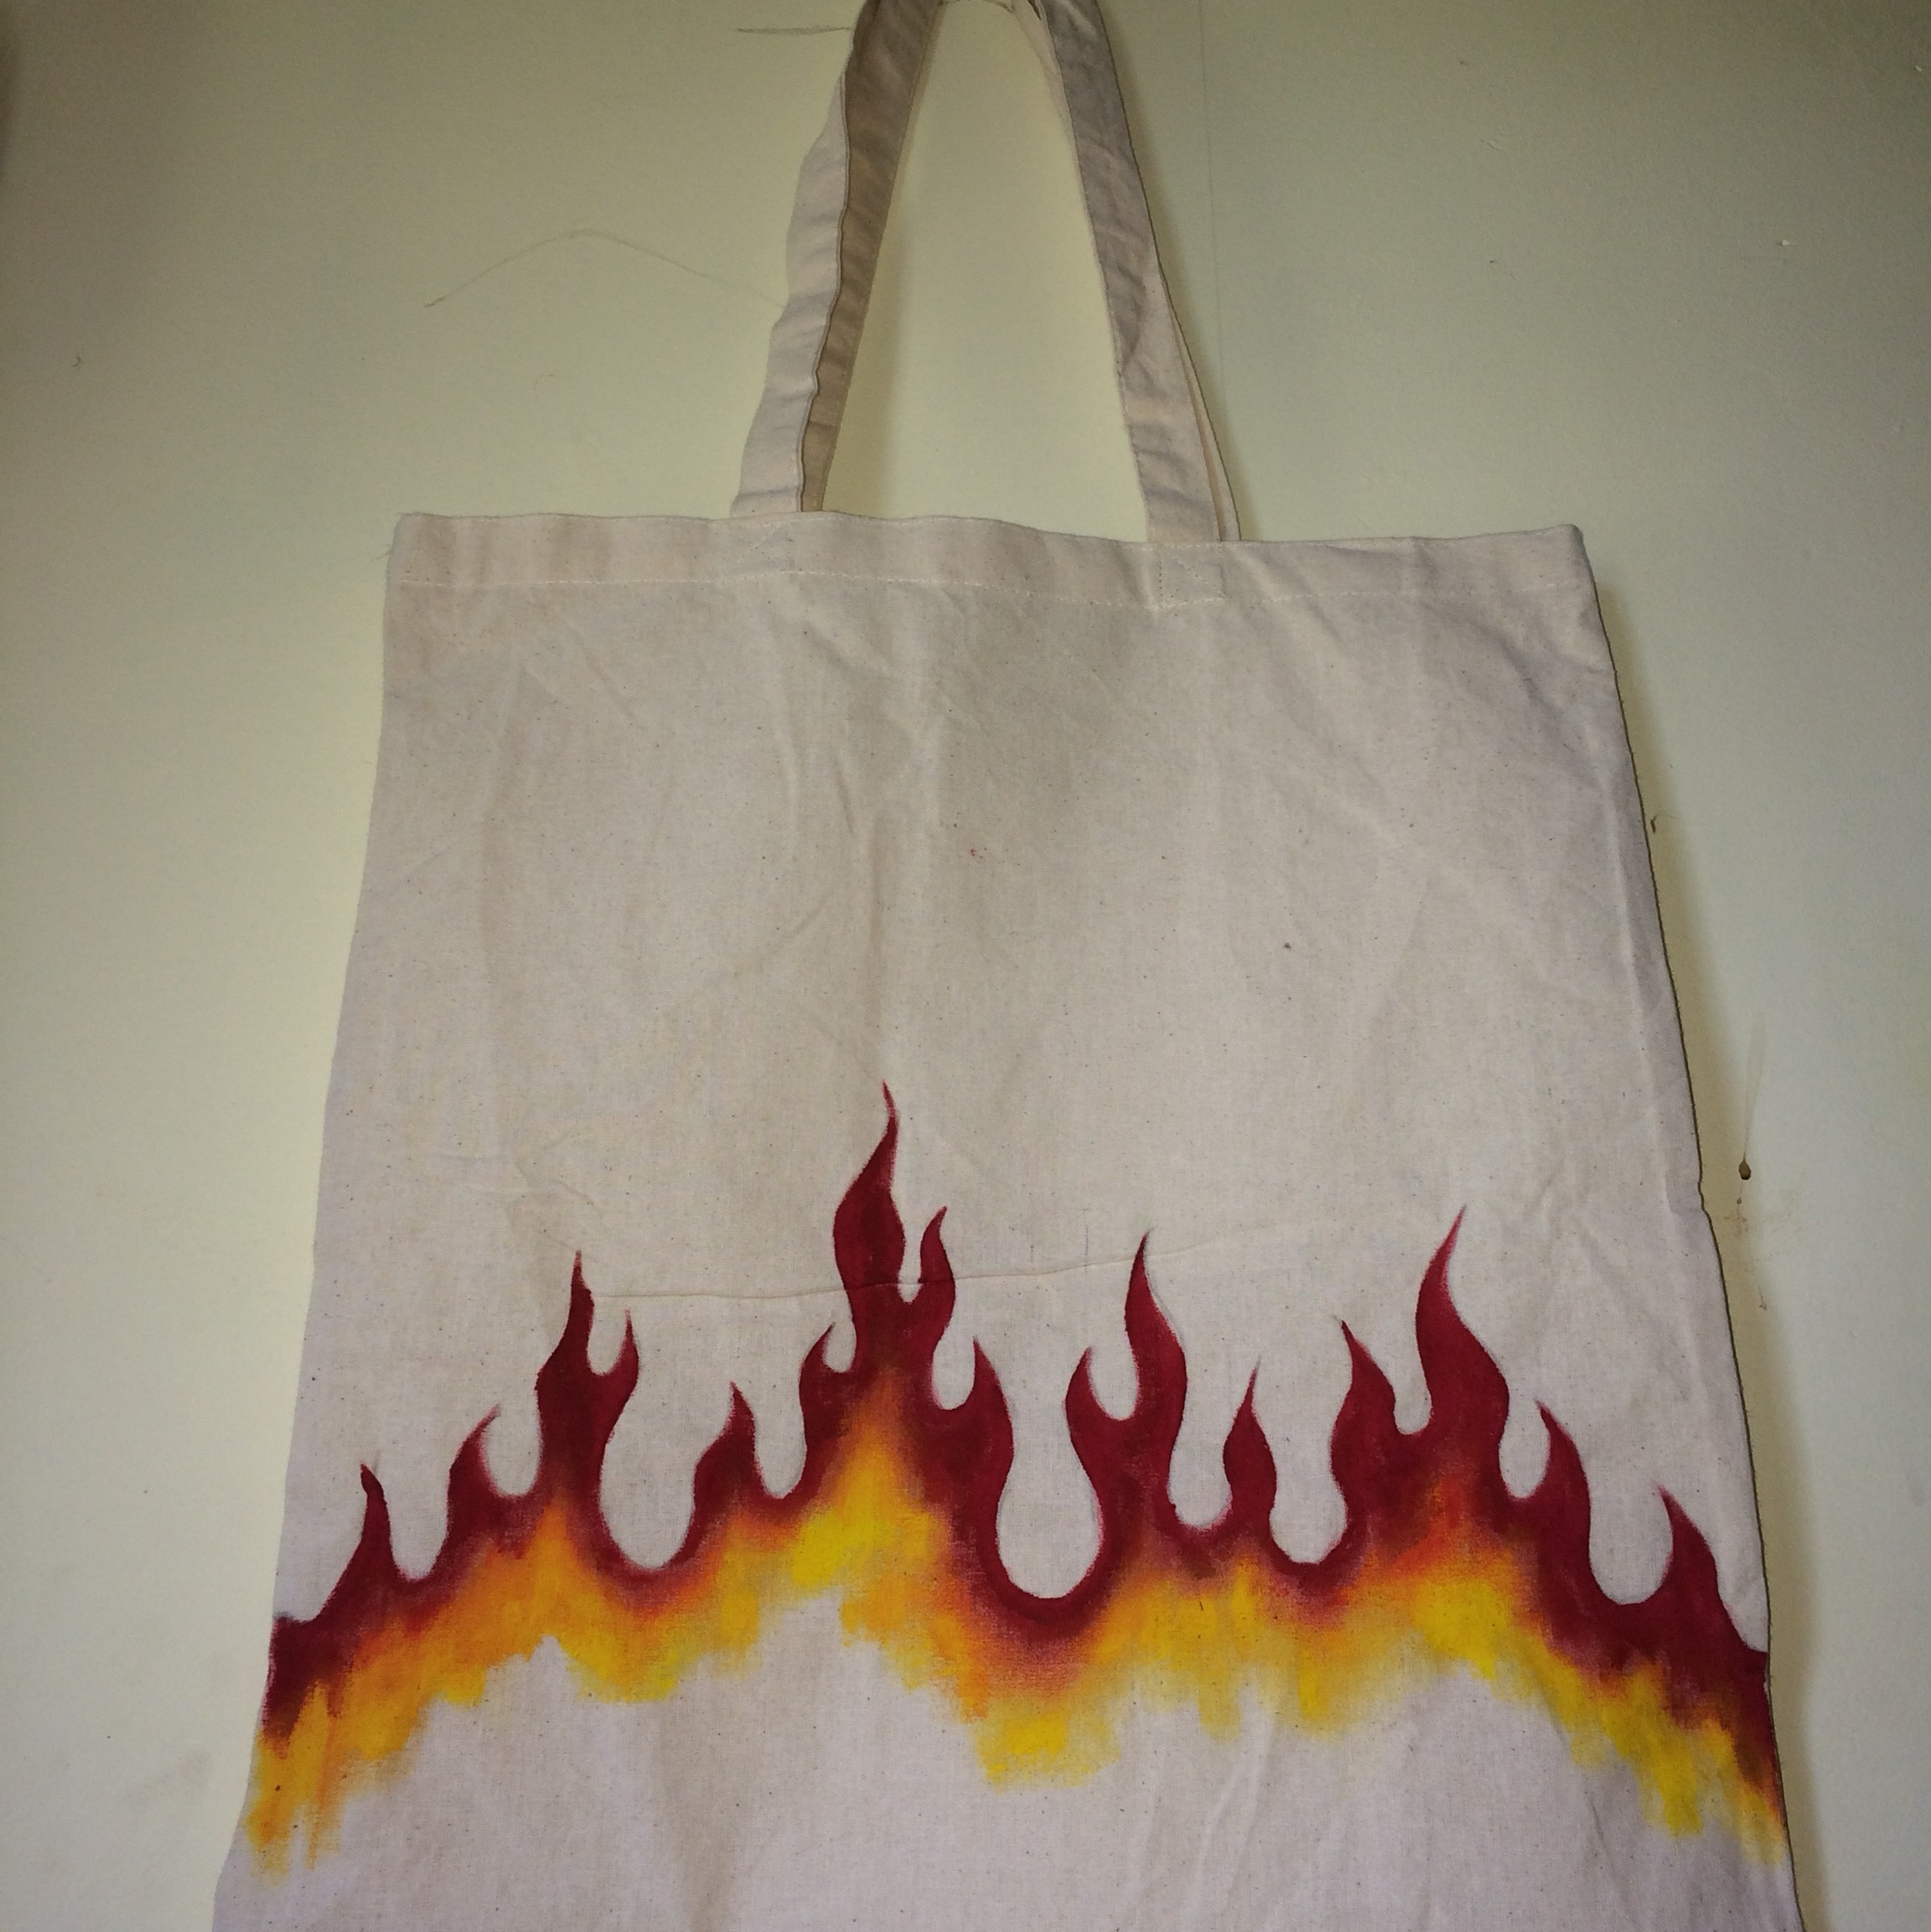 High Quality Hand Painted Flames Canvas Tote Bag Depop